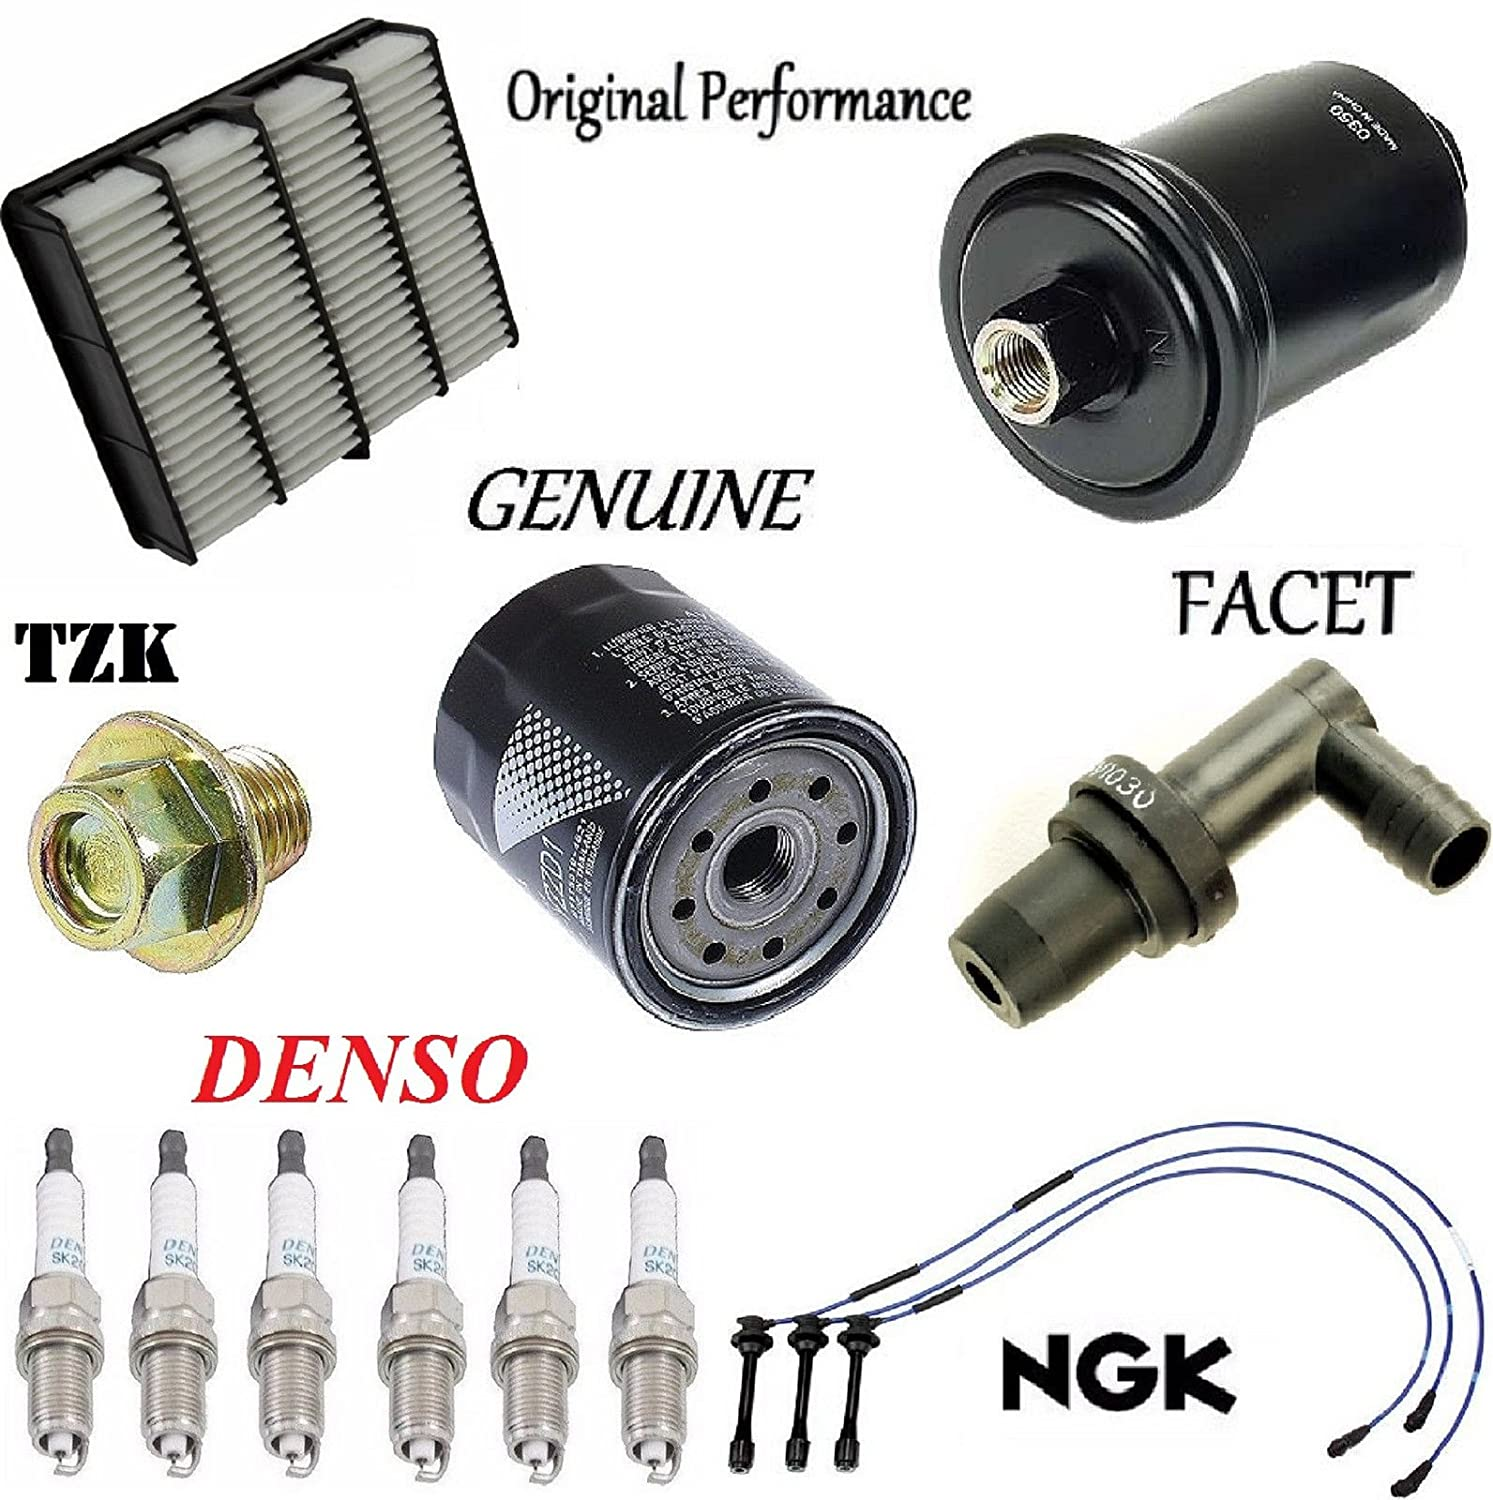 Tune Up Kit Air Oil Fuel Filters Plugs Wire for Toyota 4Runner 3.4L 1995-2004 8USAUTO